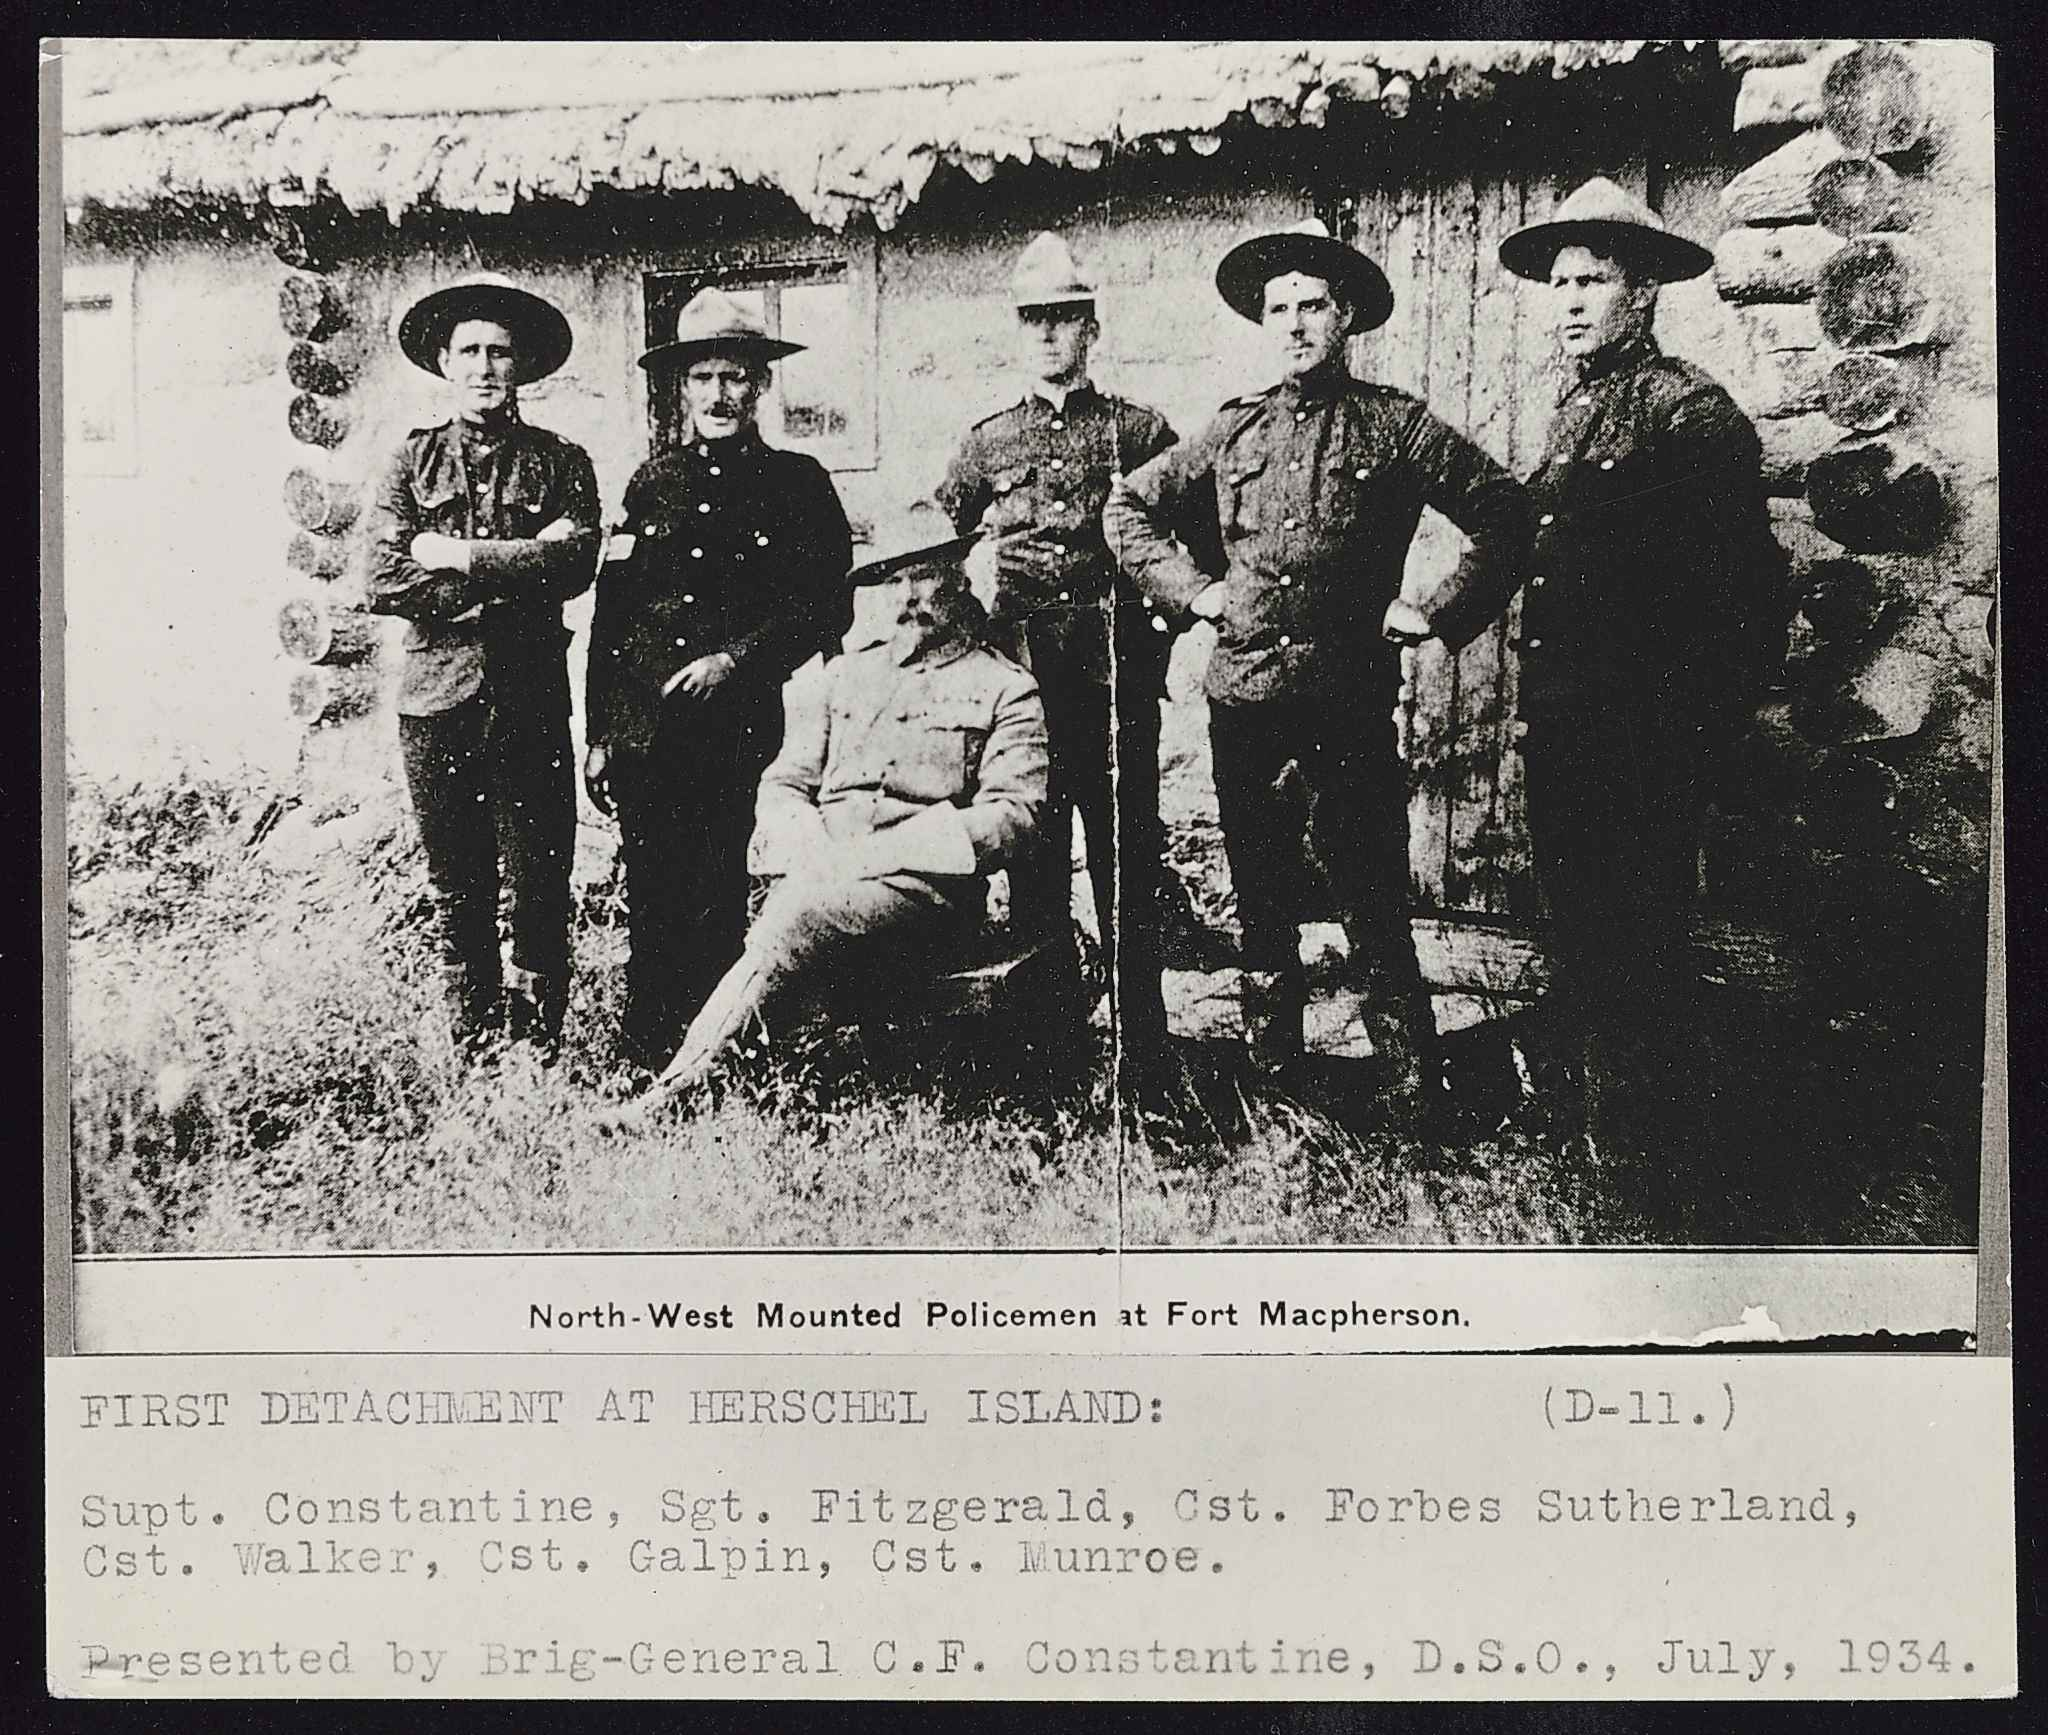 The establishment of the North-West Mounted Police, shown at Fort McPherson, helped enable prime minister John A. Macdonald to fill the West with white settlers. (Library and Archives Canada)